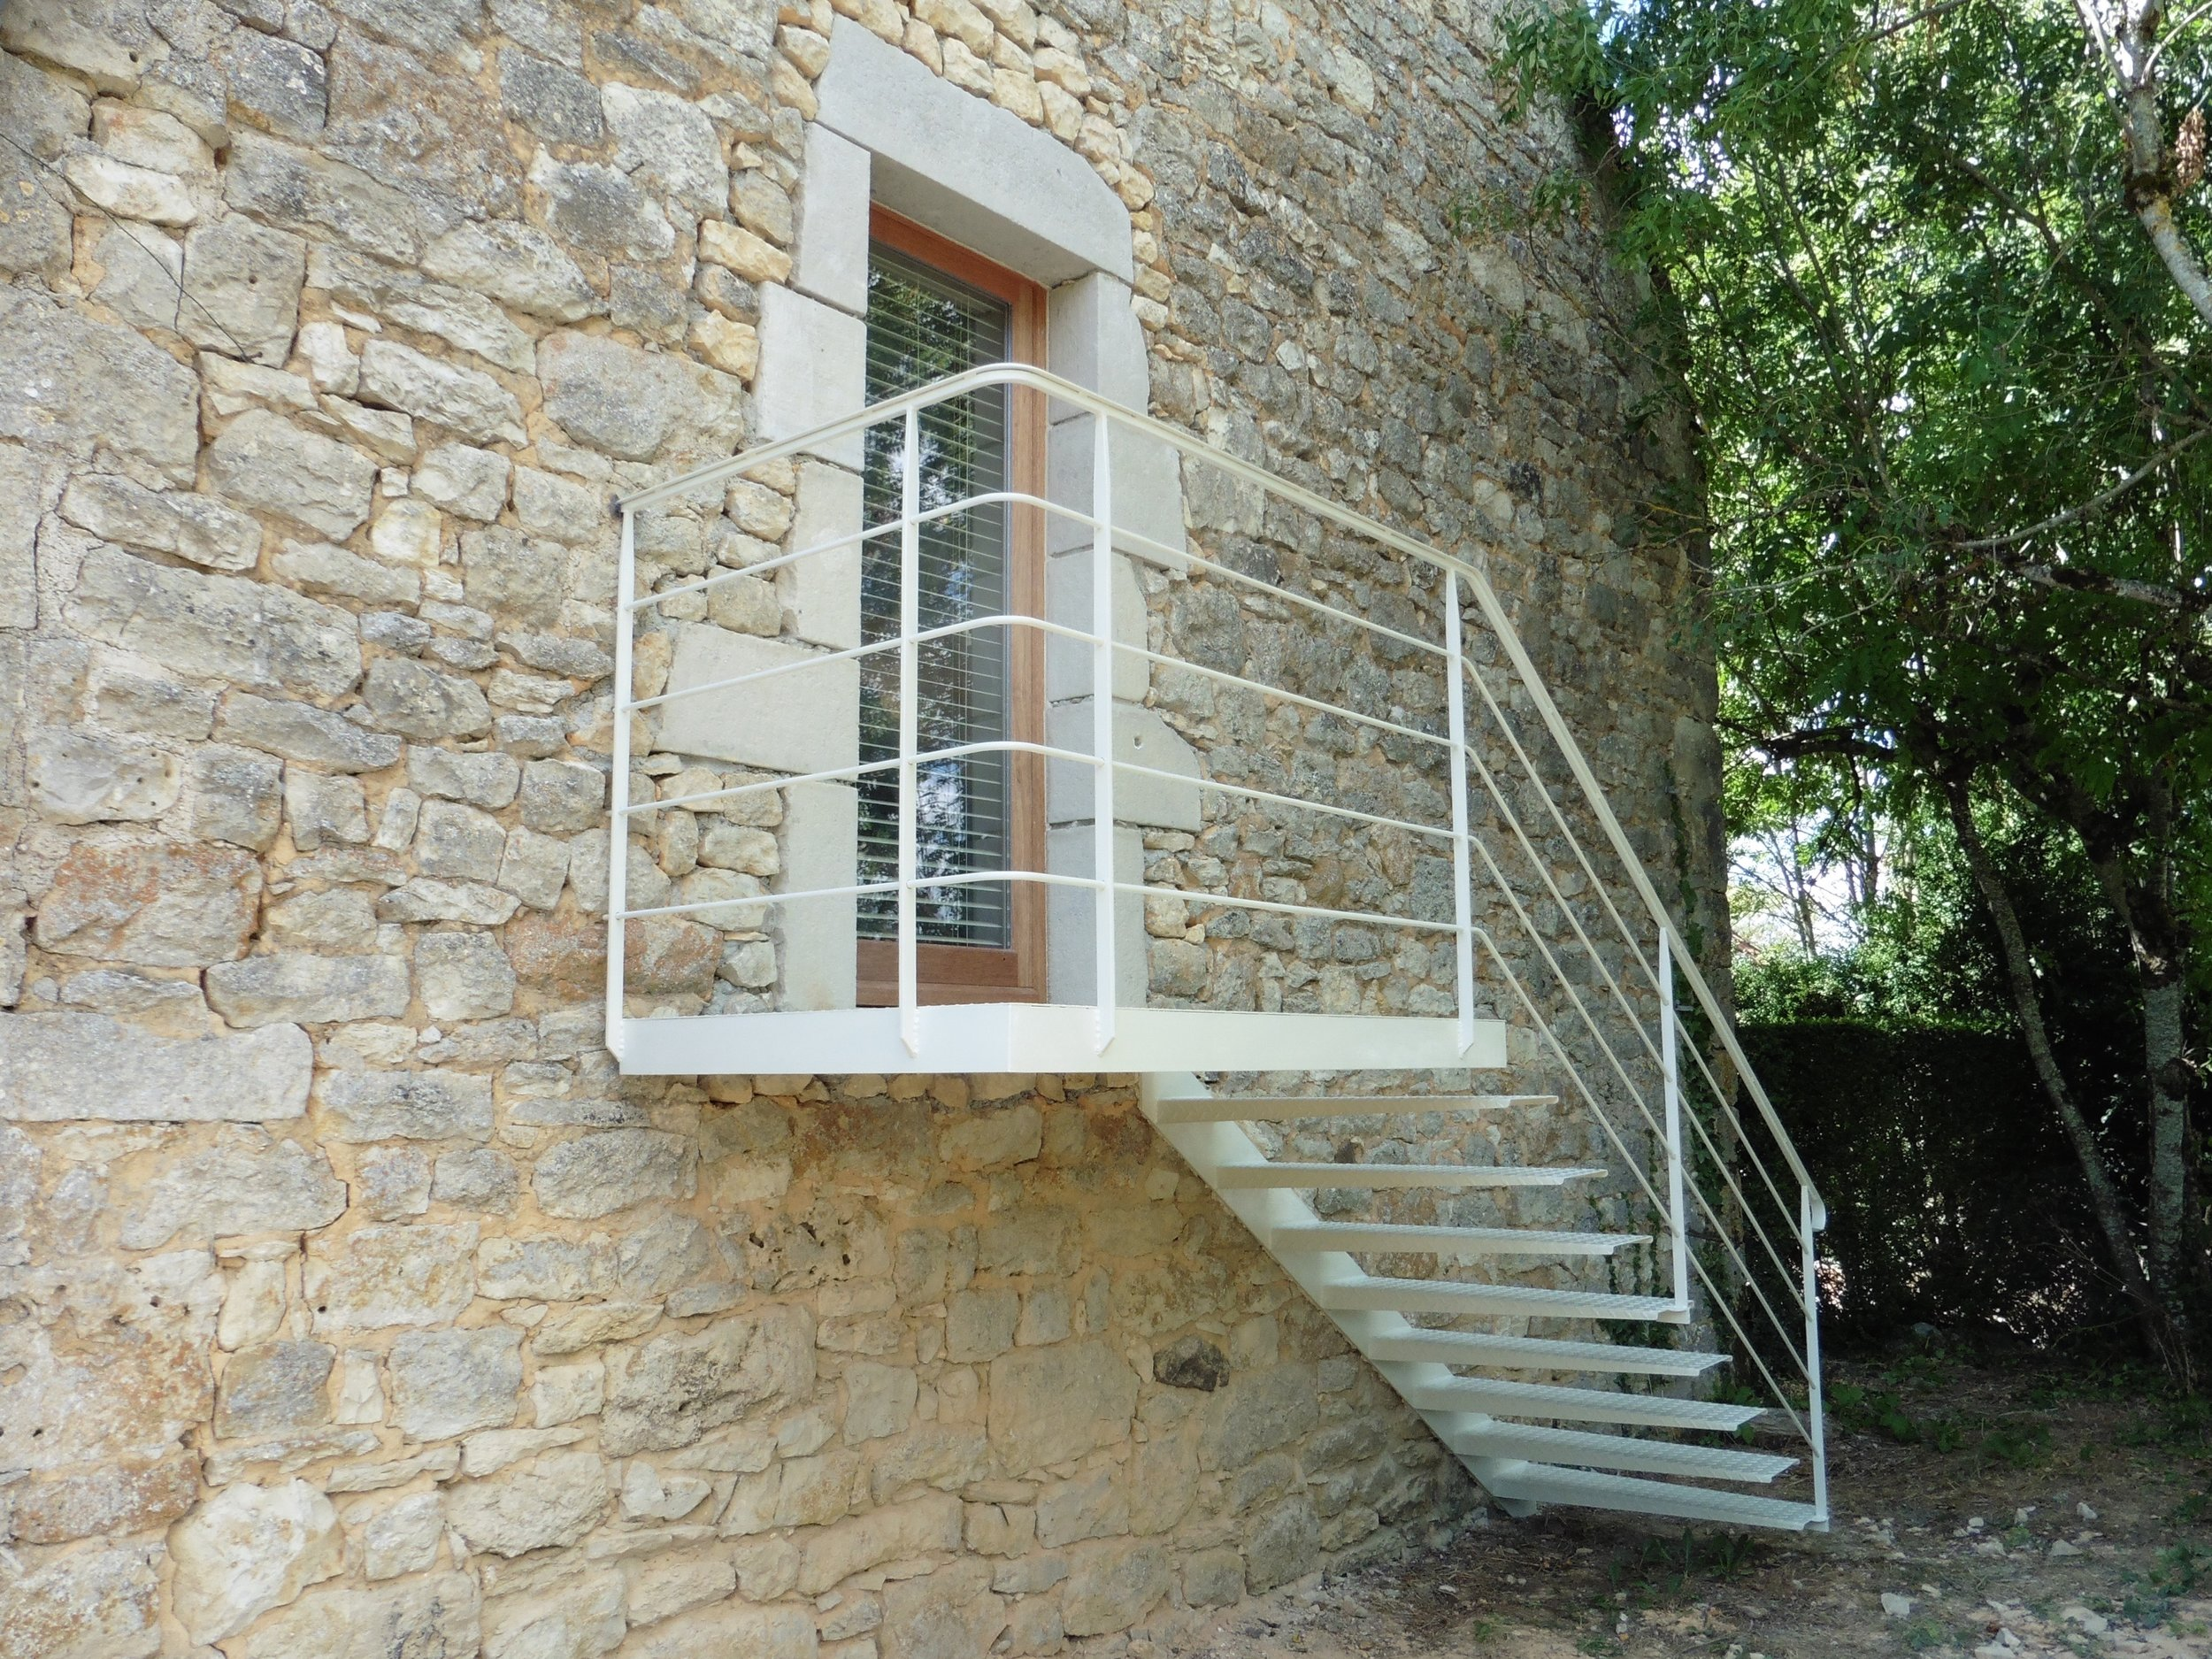 Very unusual 'floating' staircase leading down from a newly created exit. The paint colour harmonising beautifully with the old, stone walls.